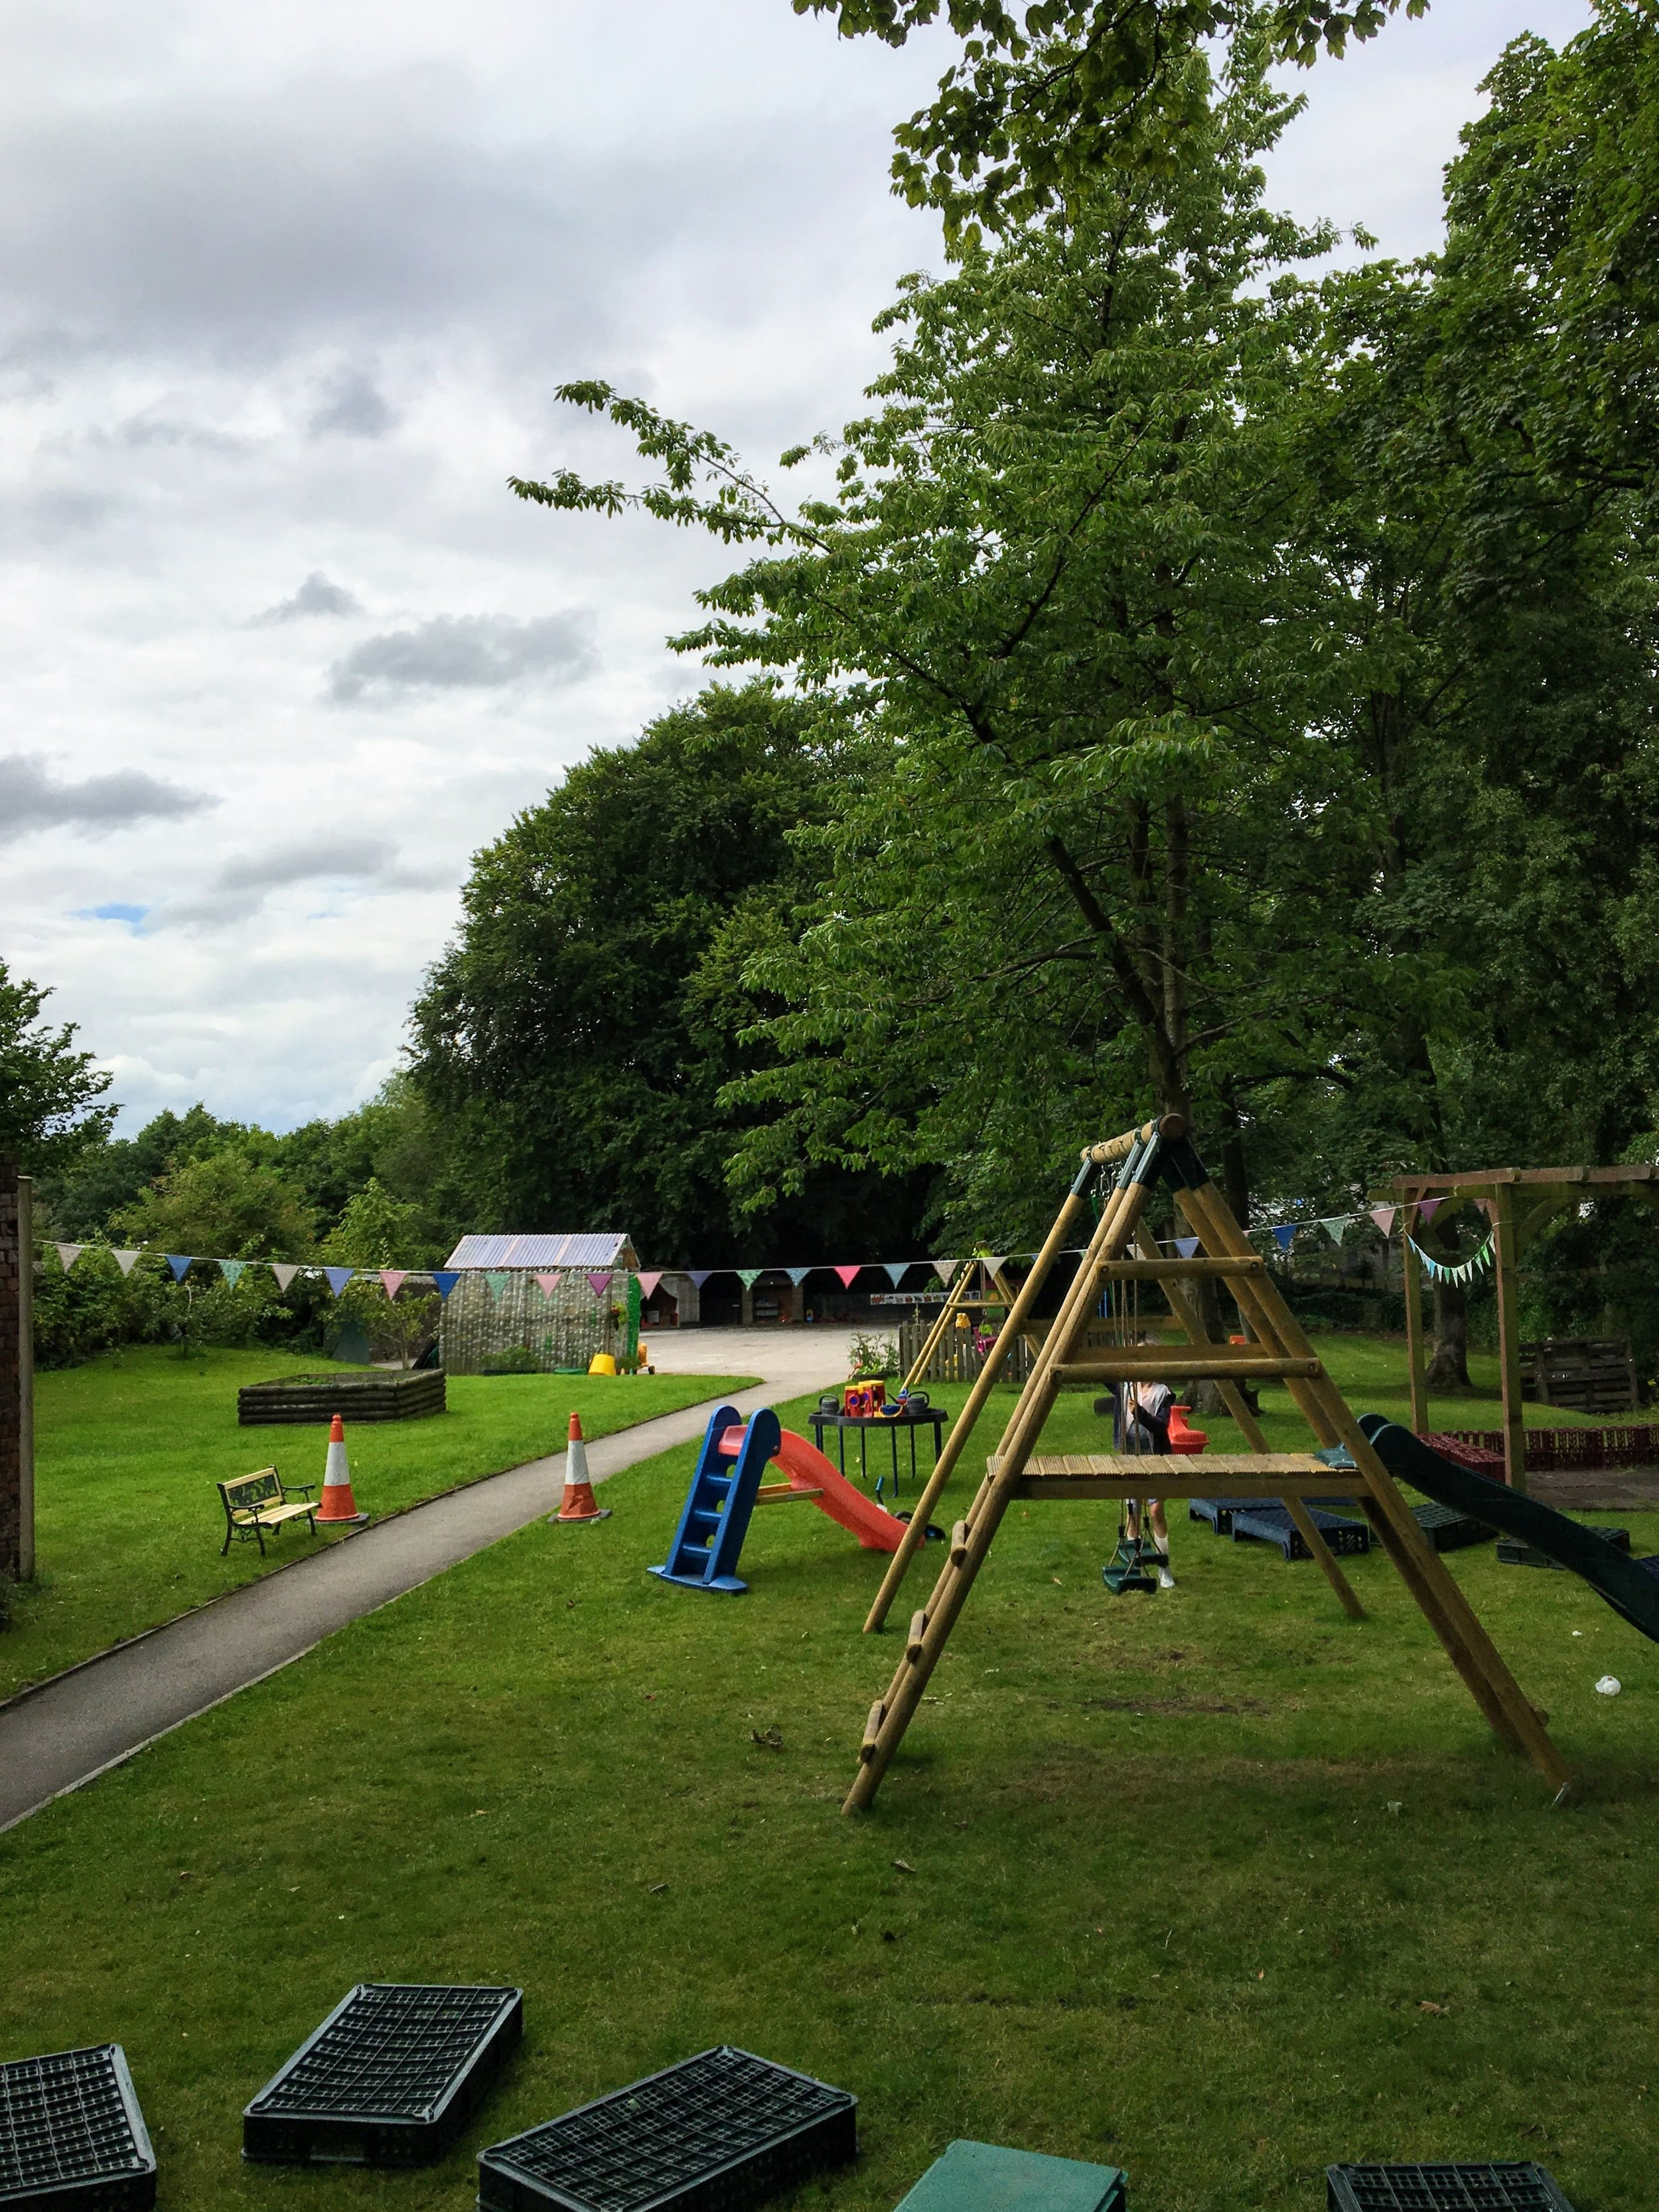 Our Garden - Take a look at our large garden play area